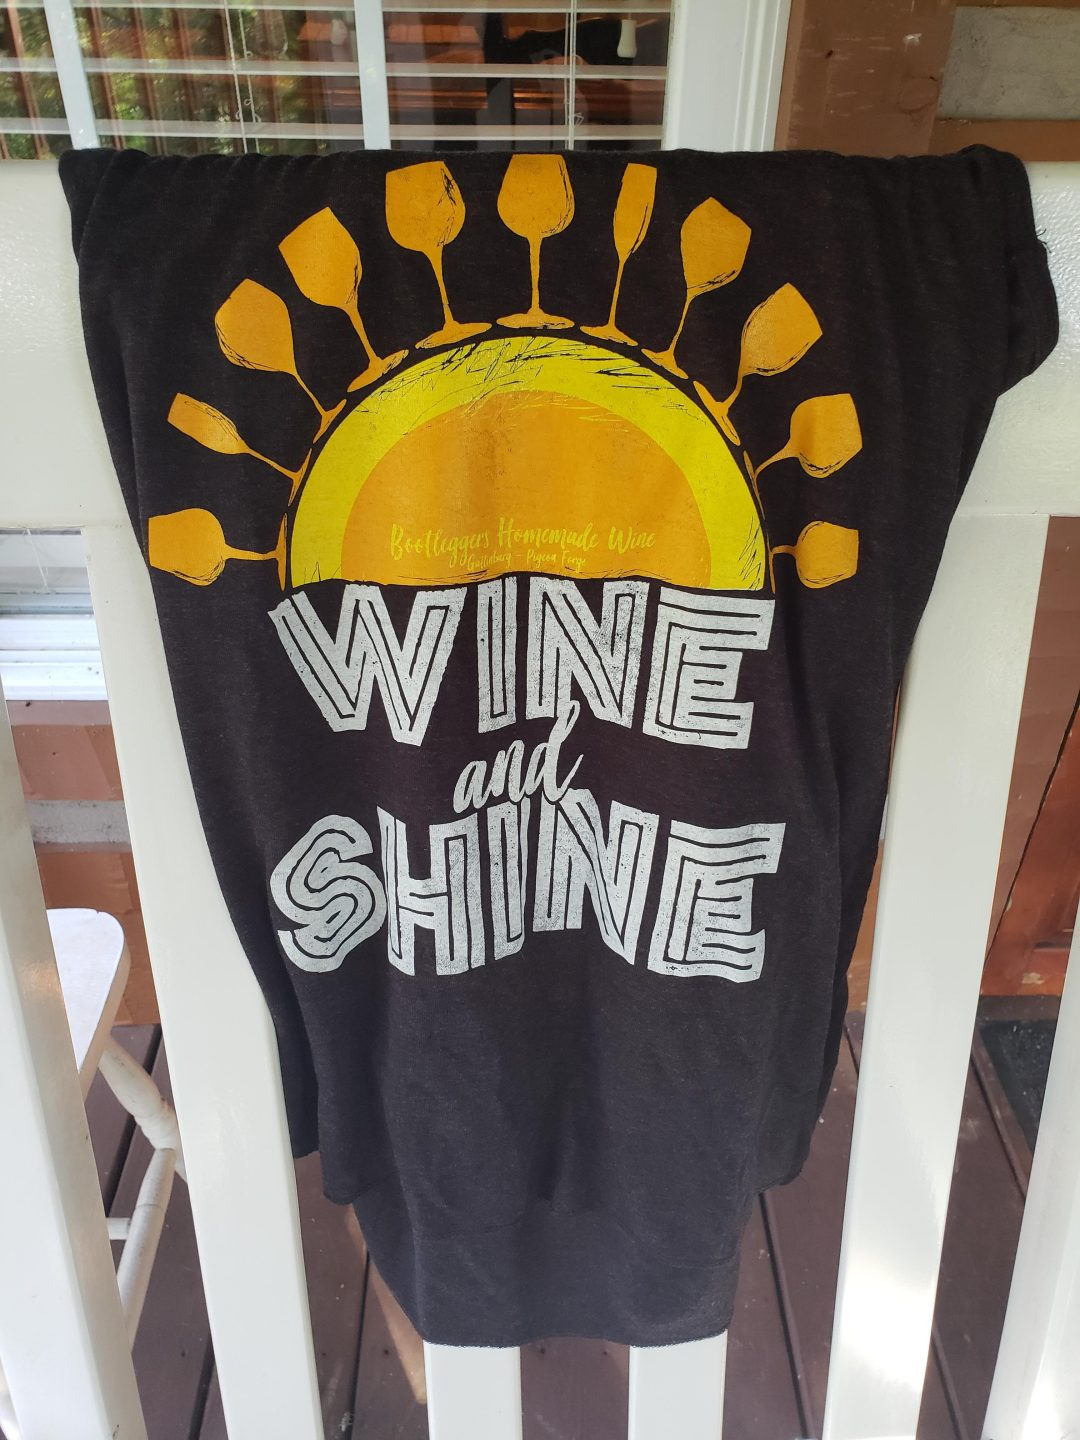 Shirt from Bootleggers Homemade Wine Store